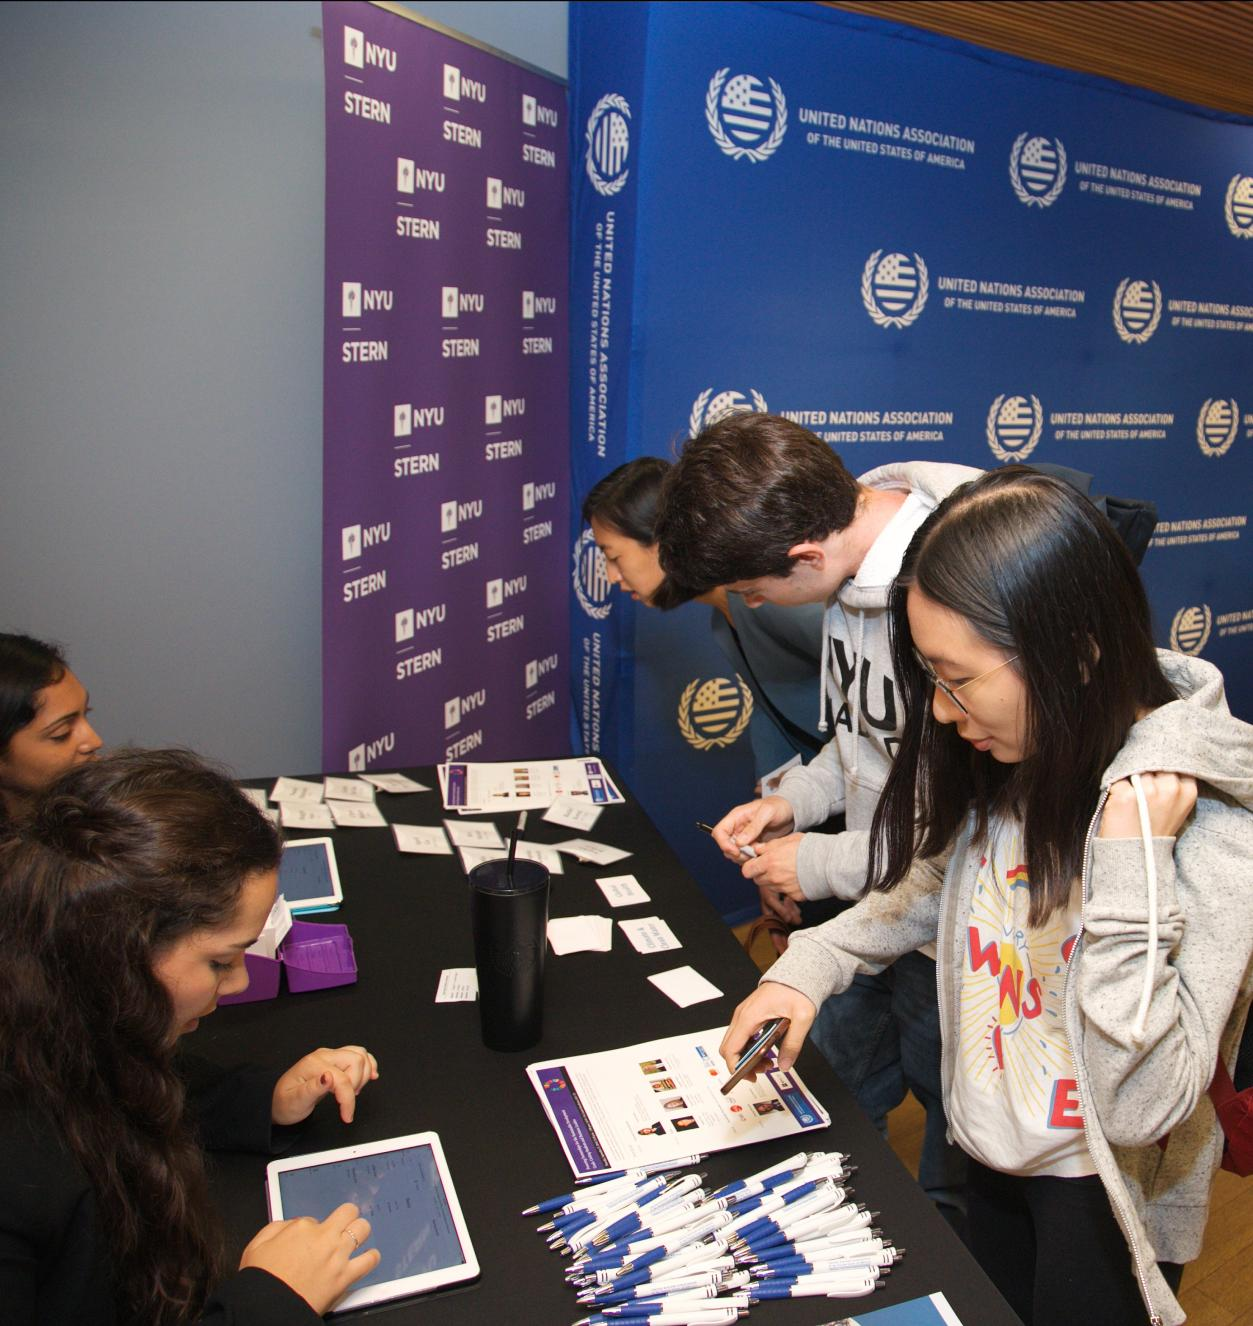 Students checking in at a table for an event